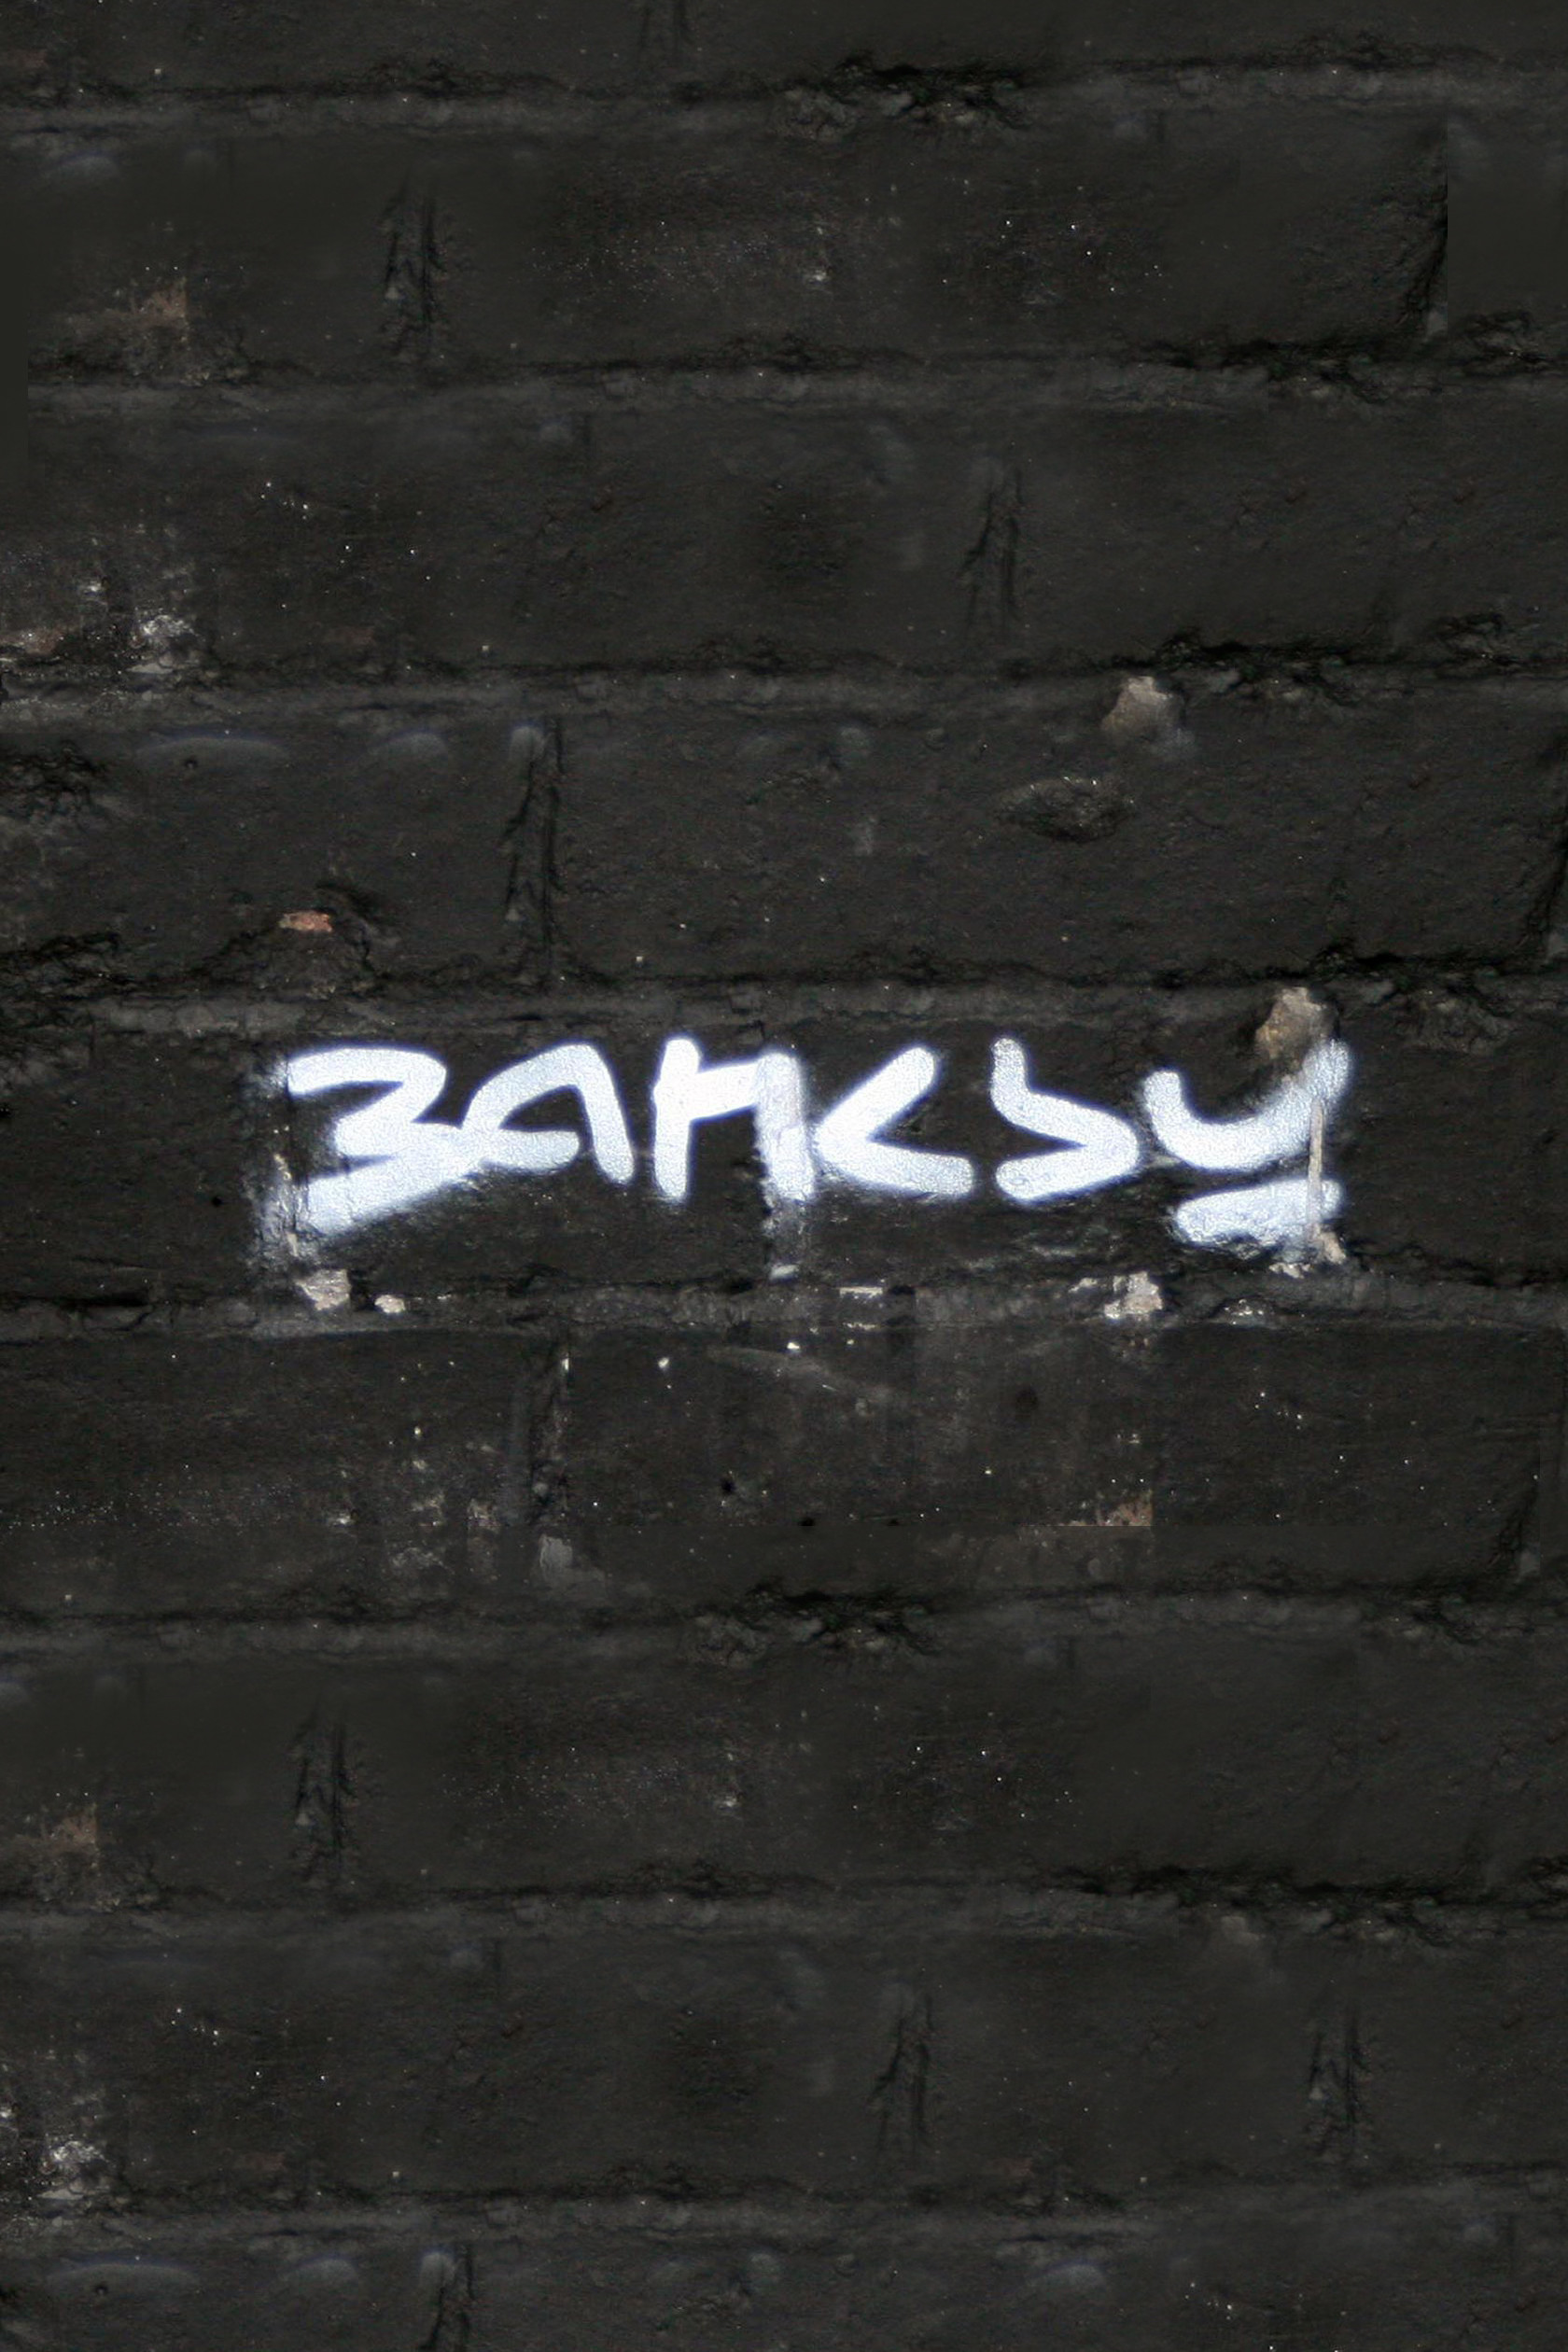 Banksy Signature Android Wallpaper. Banksy Signature Android Wallpaper